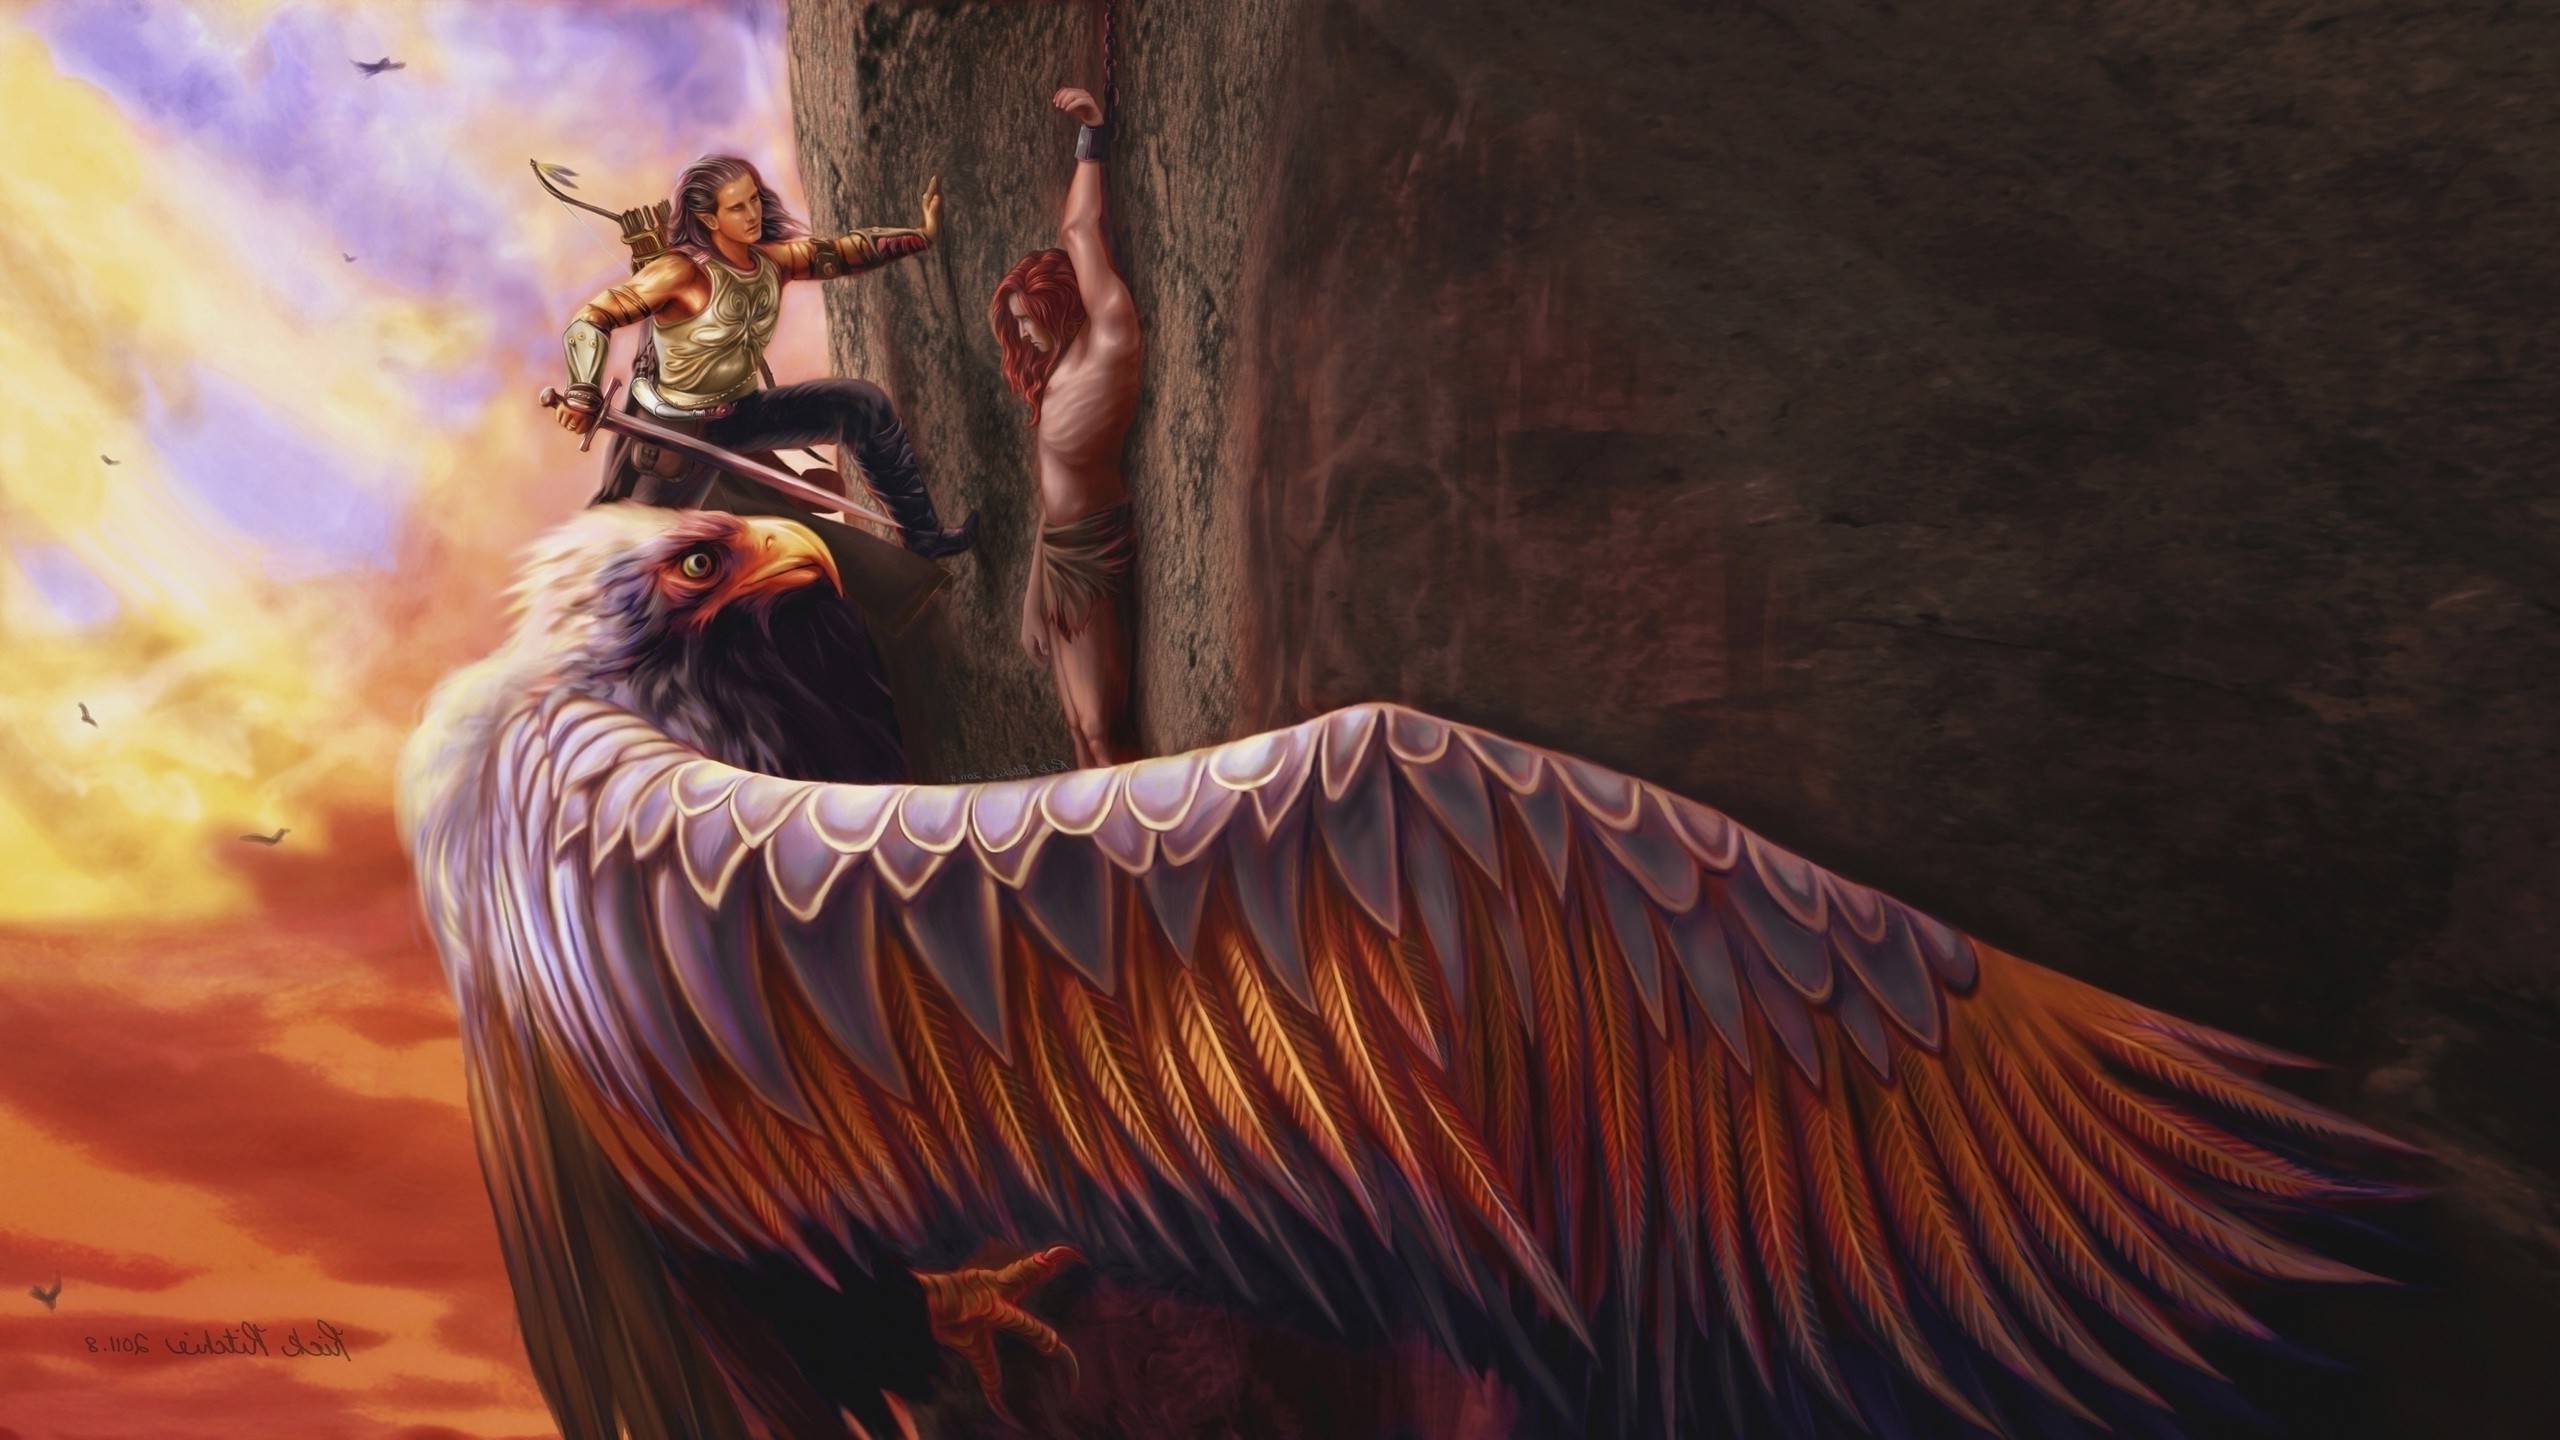 Occult Wallpapers Hd Mythology Eagle Fantasy Art Wallpapers Hd Desktop And